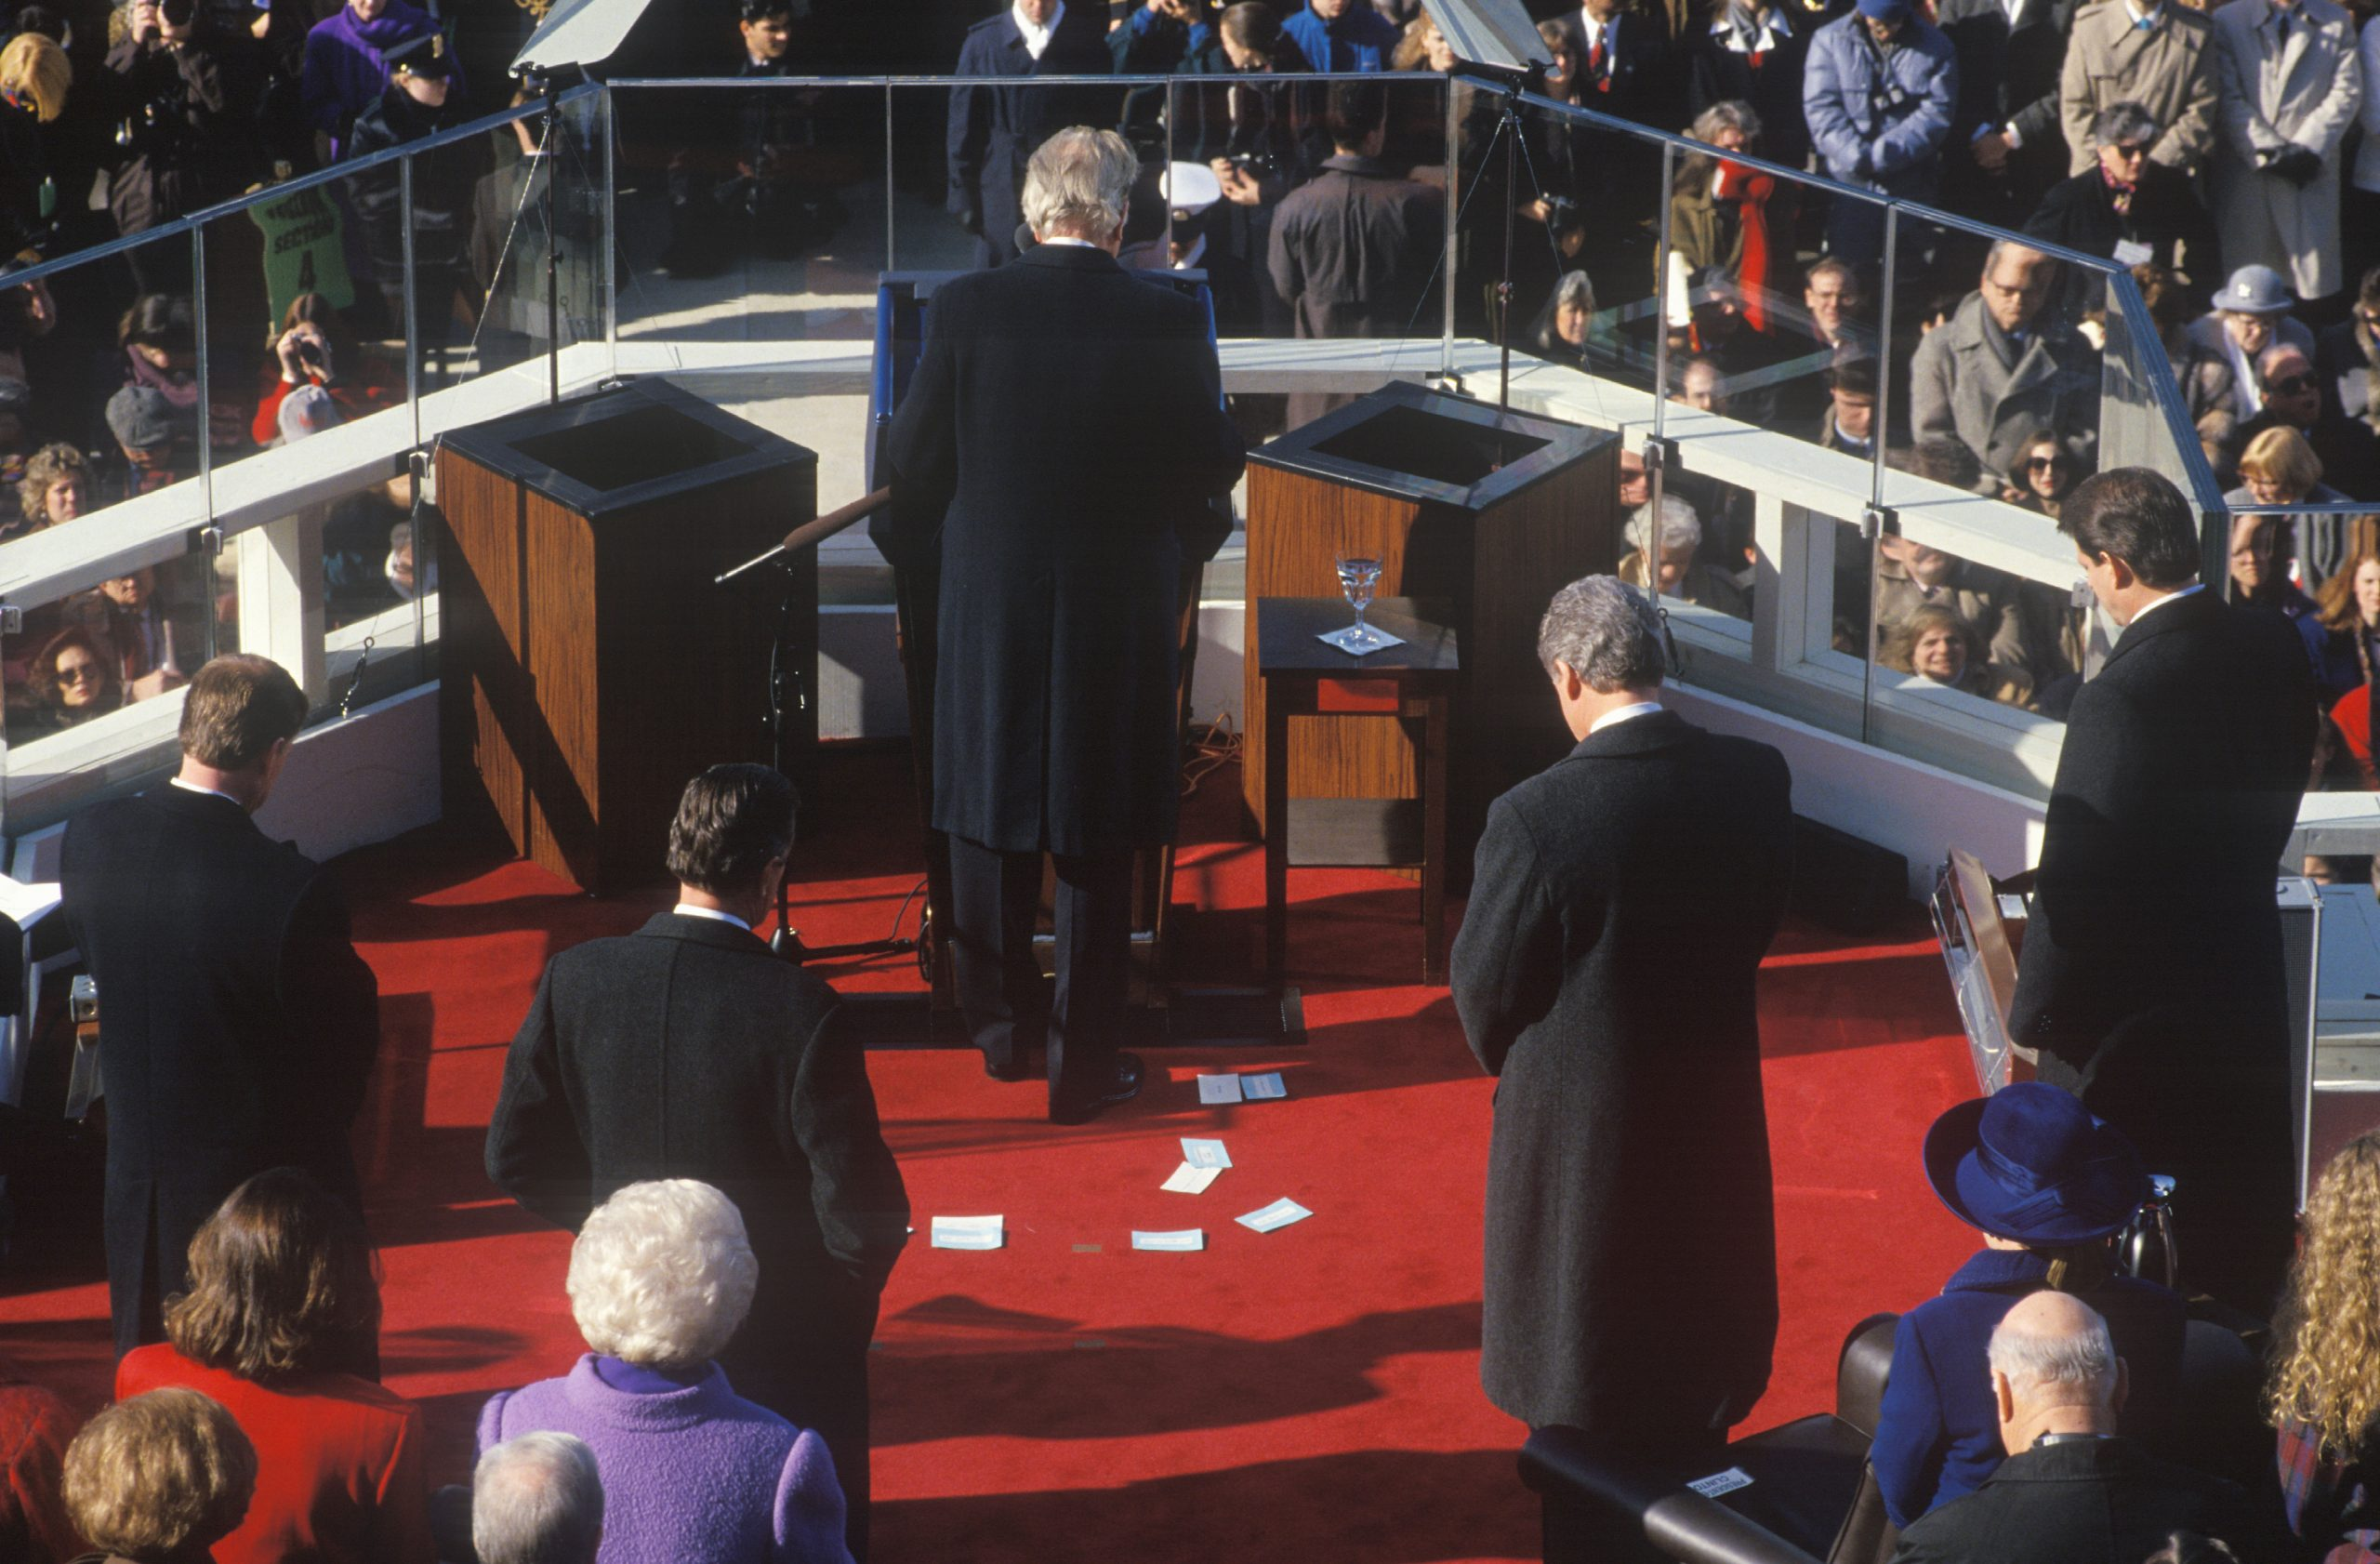 Full size image of Billy Graham delivering invocation in 1993.